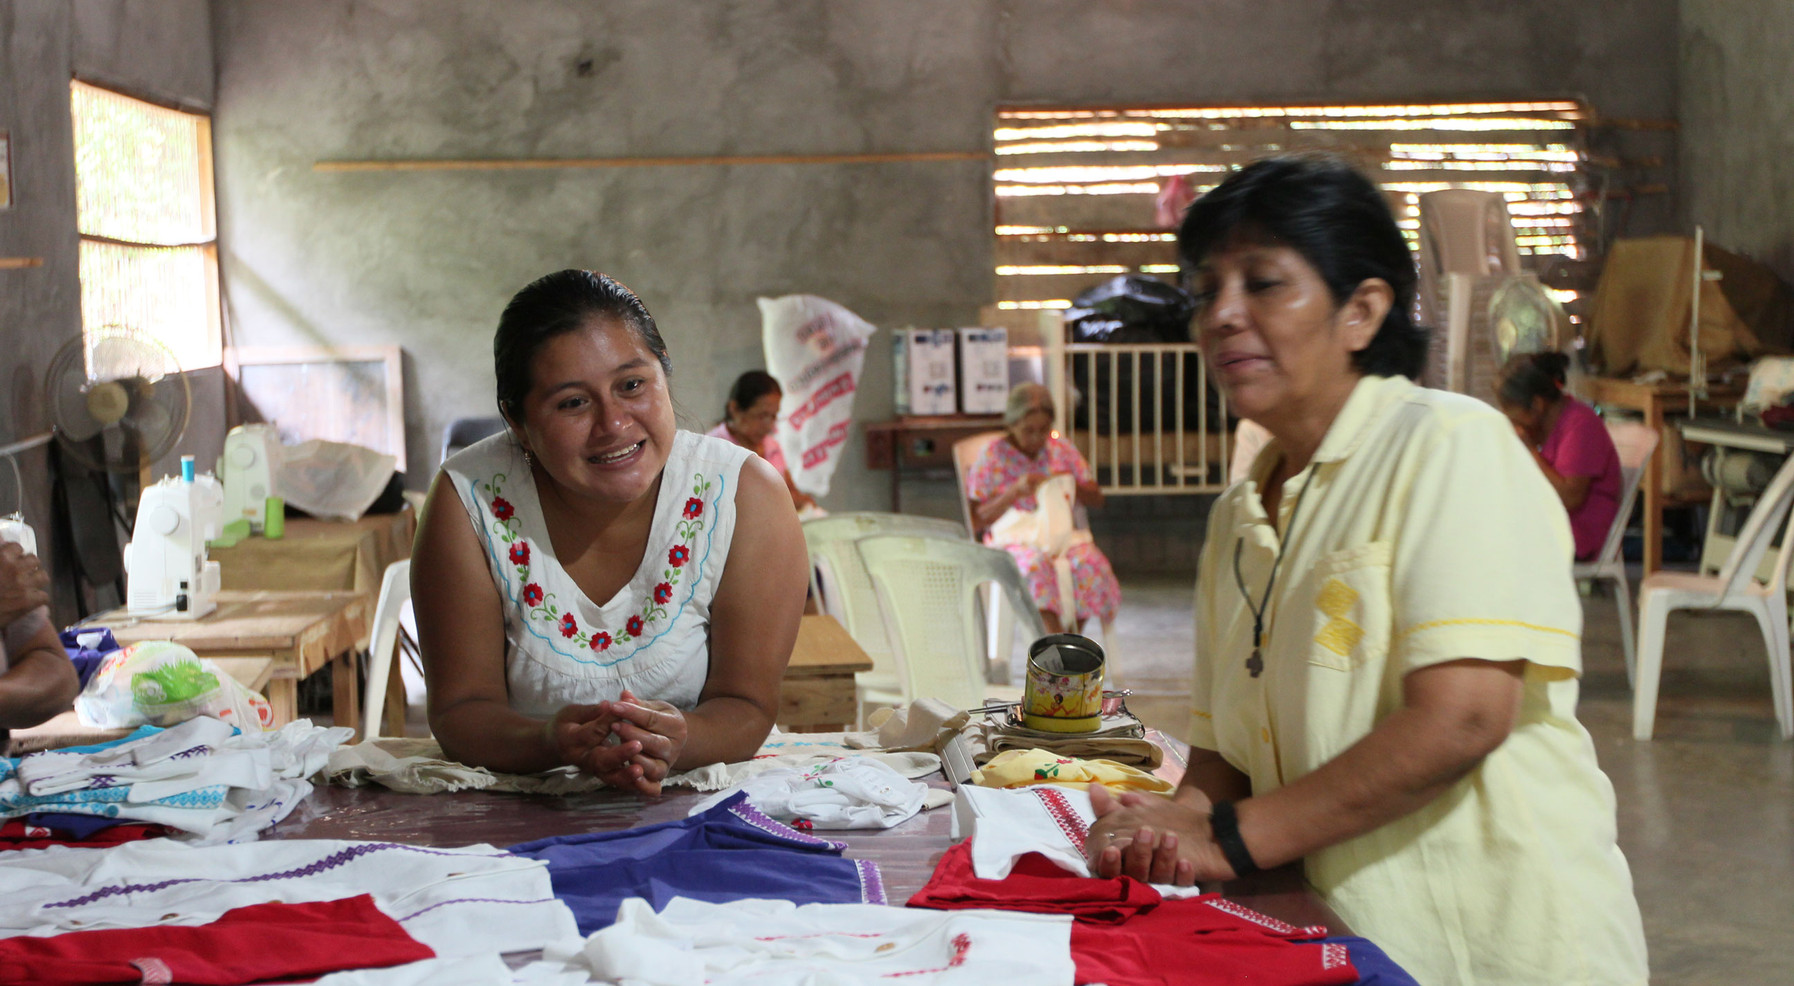 The Congregation established Cooperativade Mujeres Tampamolon, San Luis Potosí, to train indigenous women to do needlework that will enable them to produce garments and jewelry that can be marketed and sold. This enables them to provide for their families and gain some financial stability. Pictured is Sr. María Cardoso and one of the program's clients.